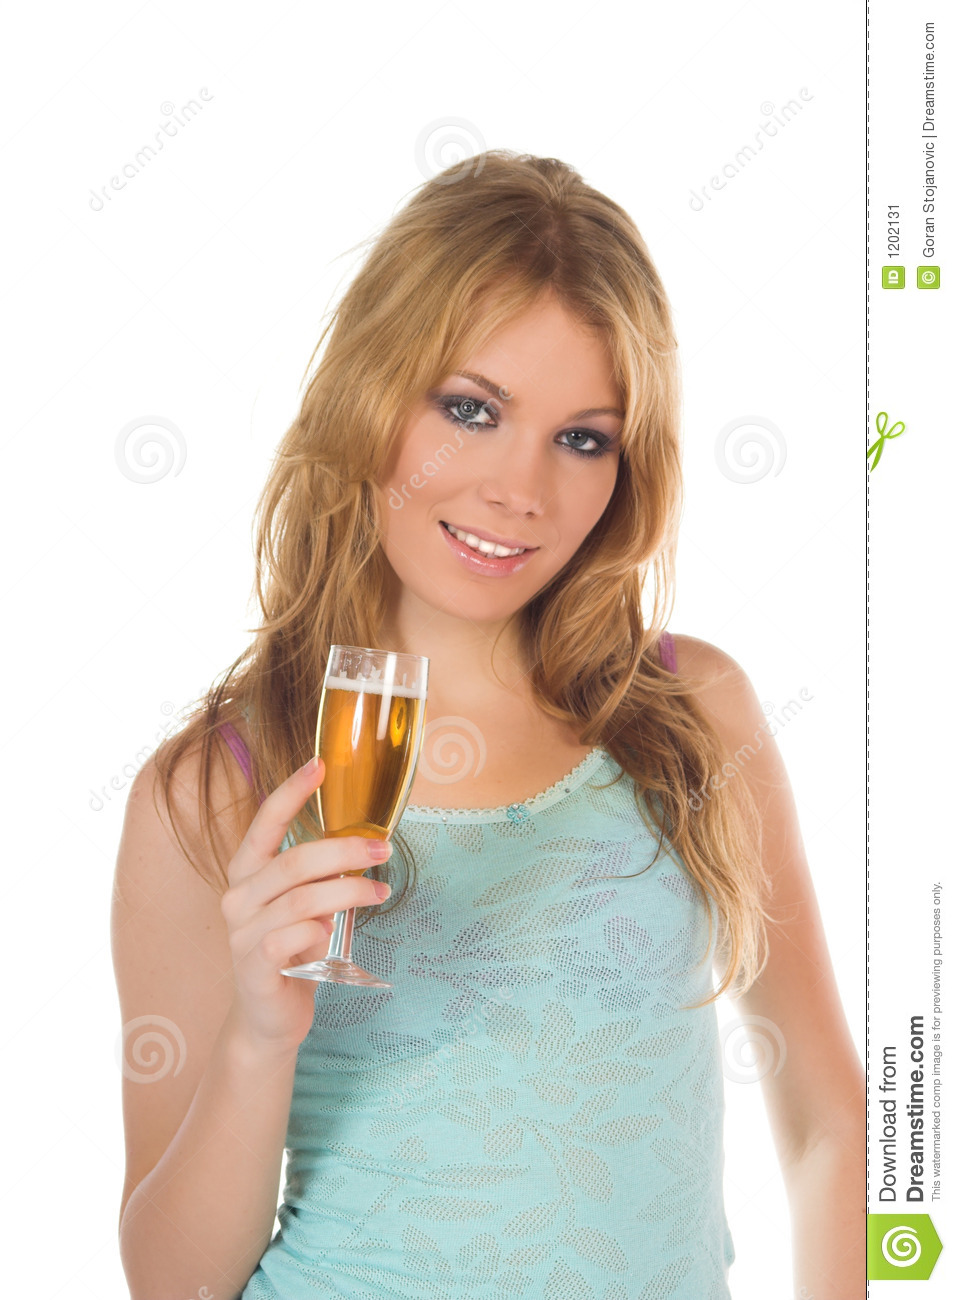 Attractive blondie girl with glass of wine in hand